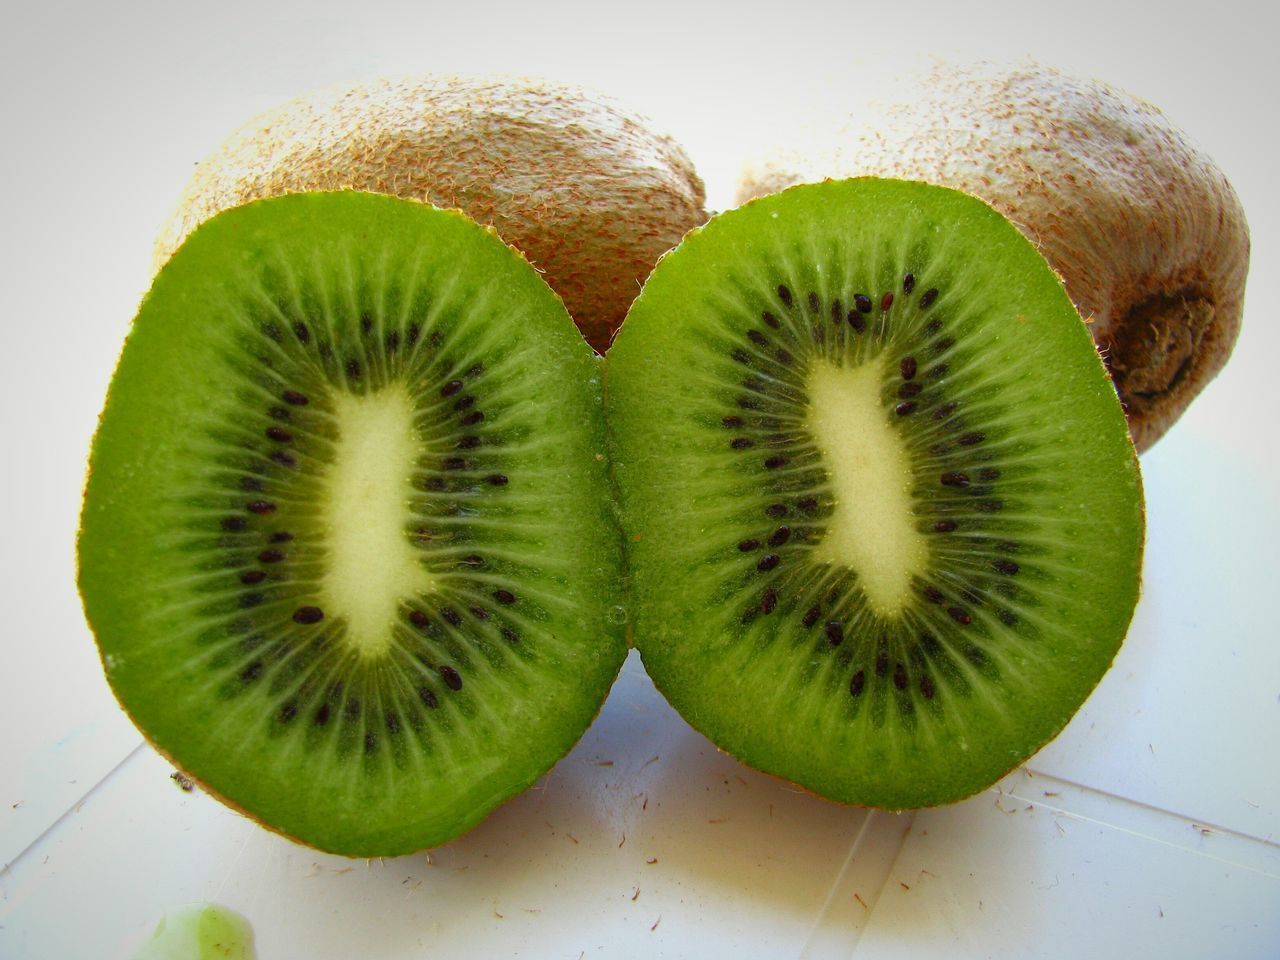 Kiwi Kiwi - Fruit Kiwis Fruit Green Color Backgrounds Fine Art Dietfood Diet & Fitness Diet Green Green Fruit Food Close-up Food And Drink Healthy Eating Freshness Ready-to-eat Nutritious Delicious Still Life White Background My World Of Food Food Photography Healthy Food Visual Feast